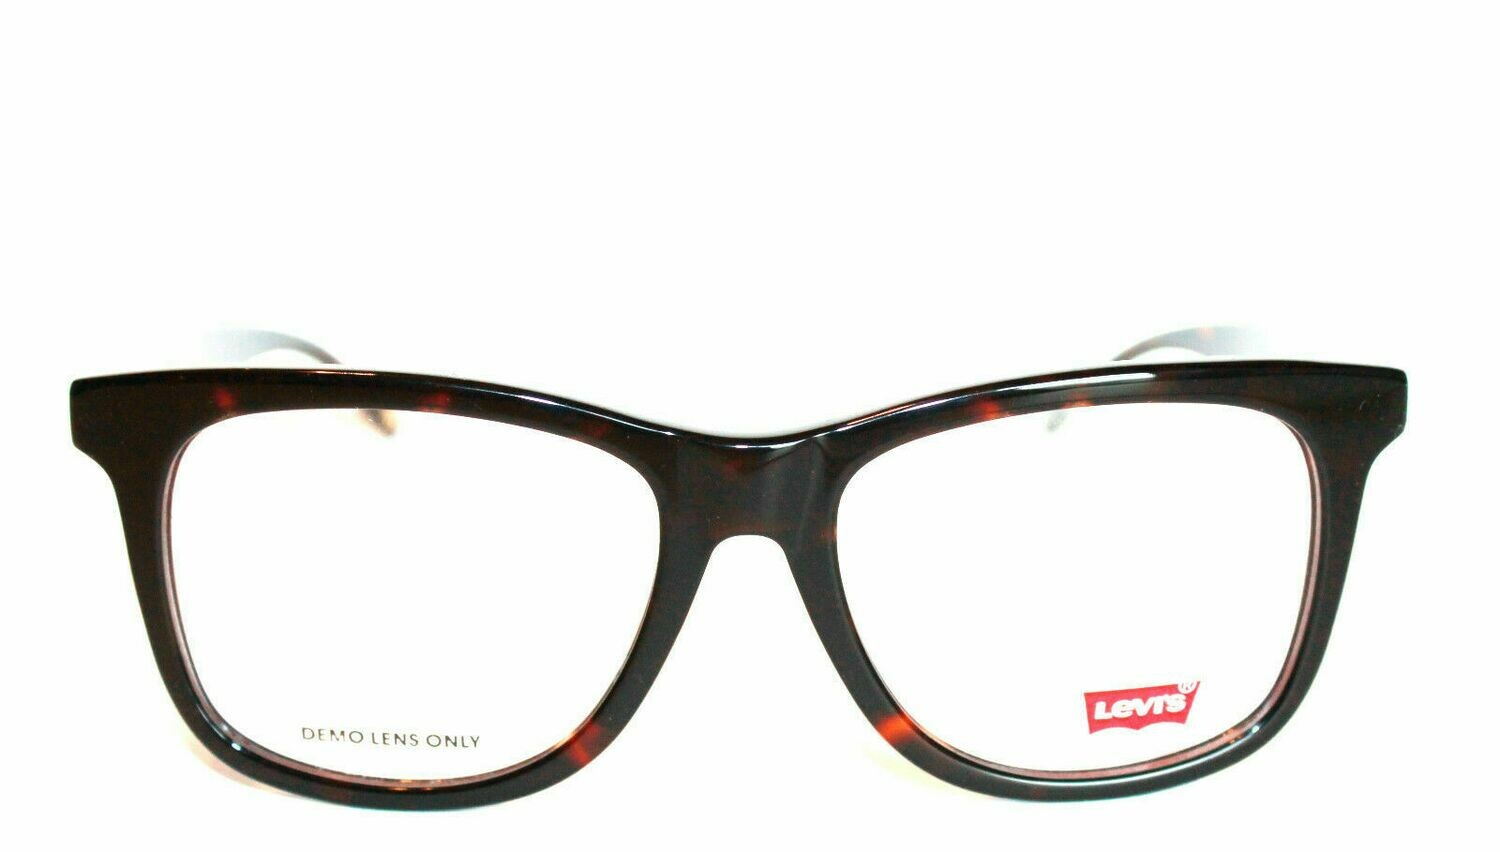 2 Pair Authentic and New Levi's LS121 eyeglass frame BR Tortoise & Black